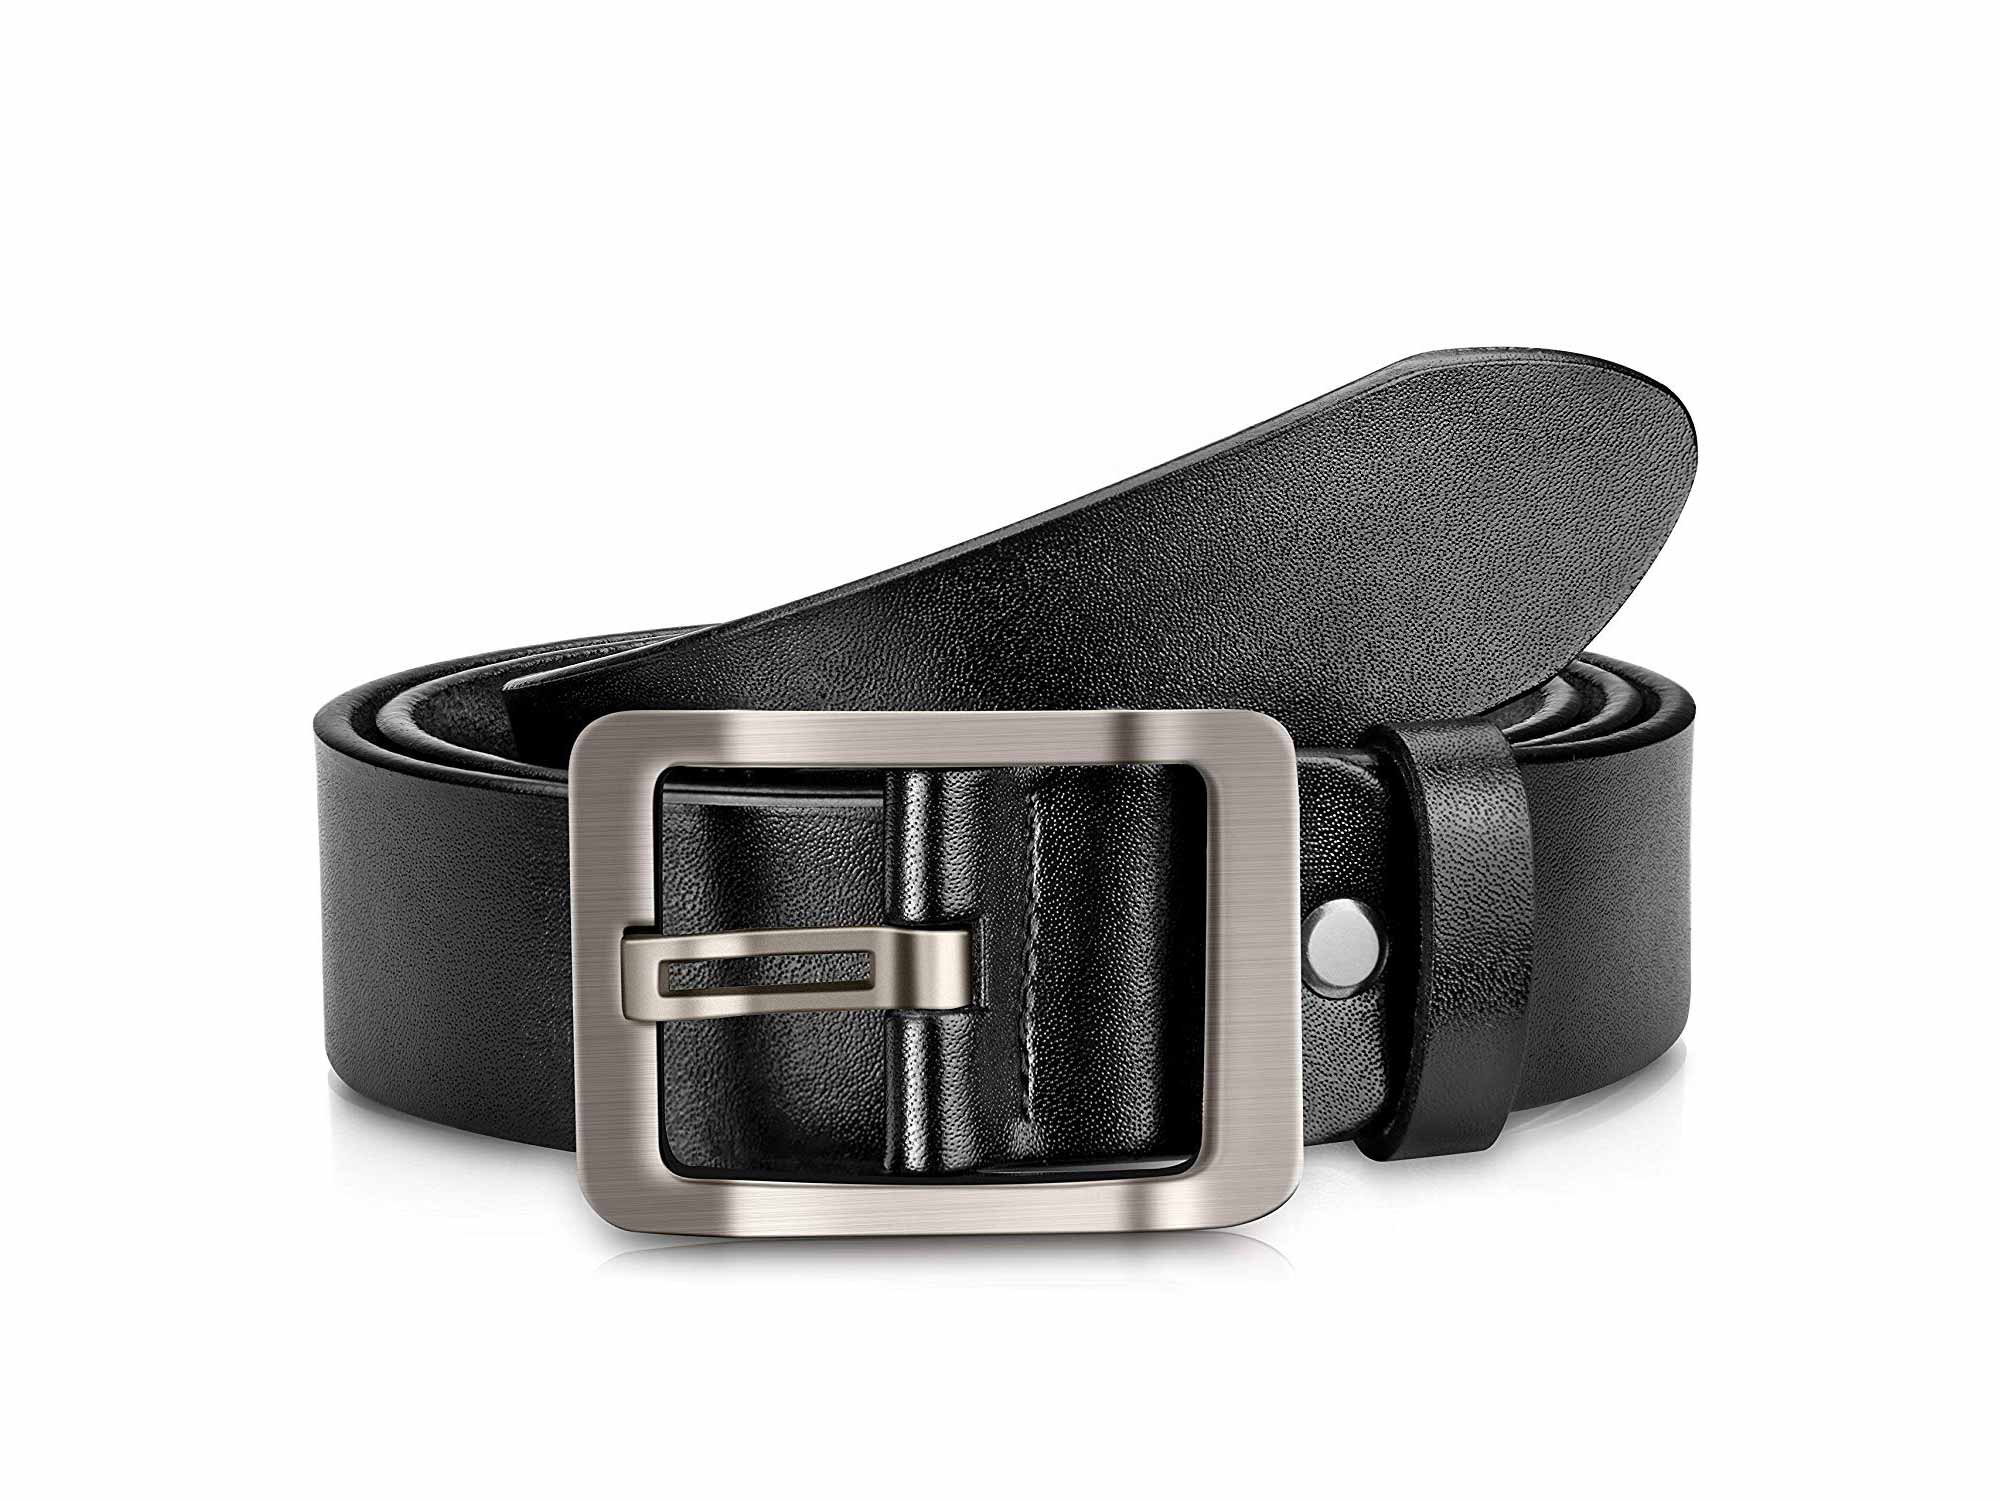 OVEYNERSIN Genuine Leather Causal Dress Belt for Men with Classic Single Prong Buckle